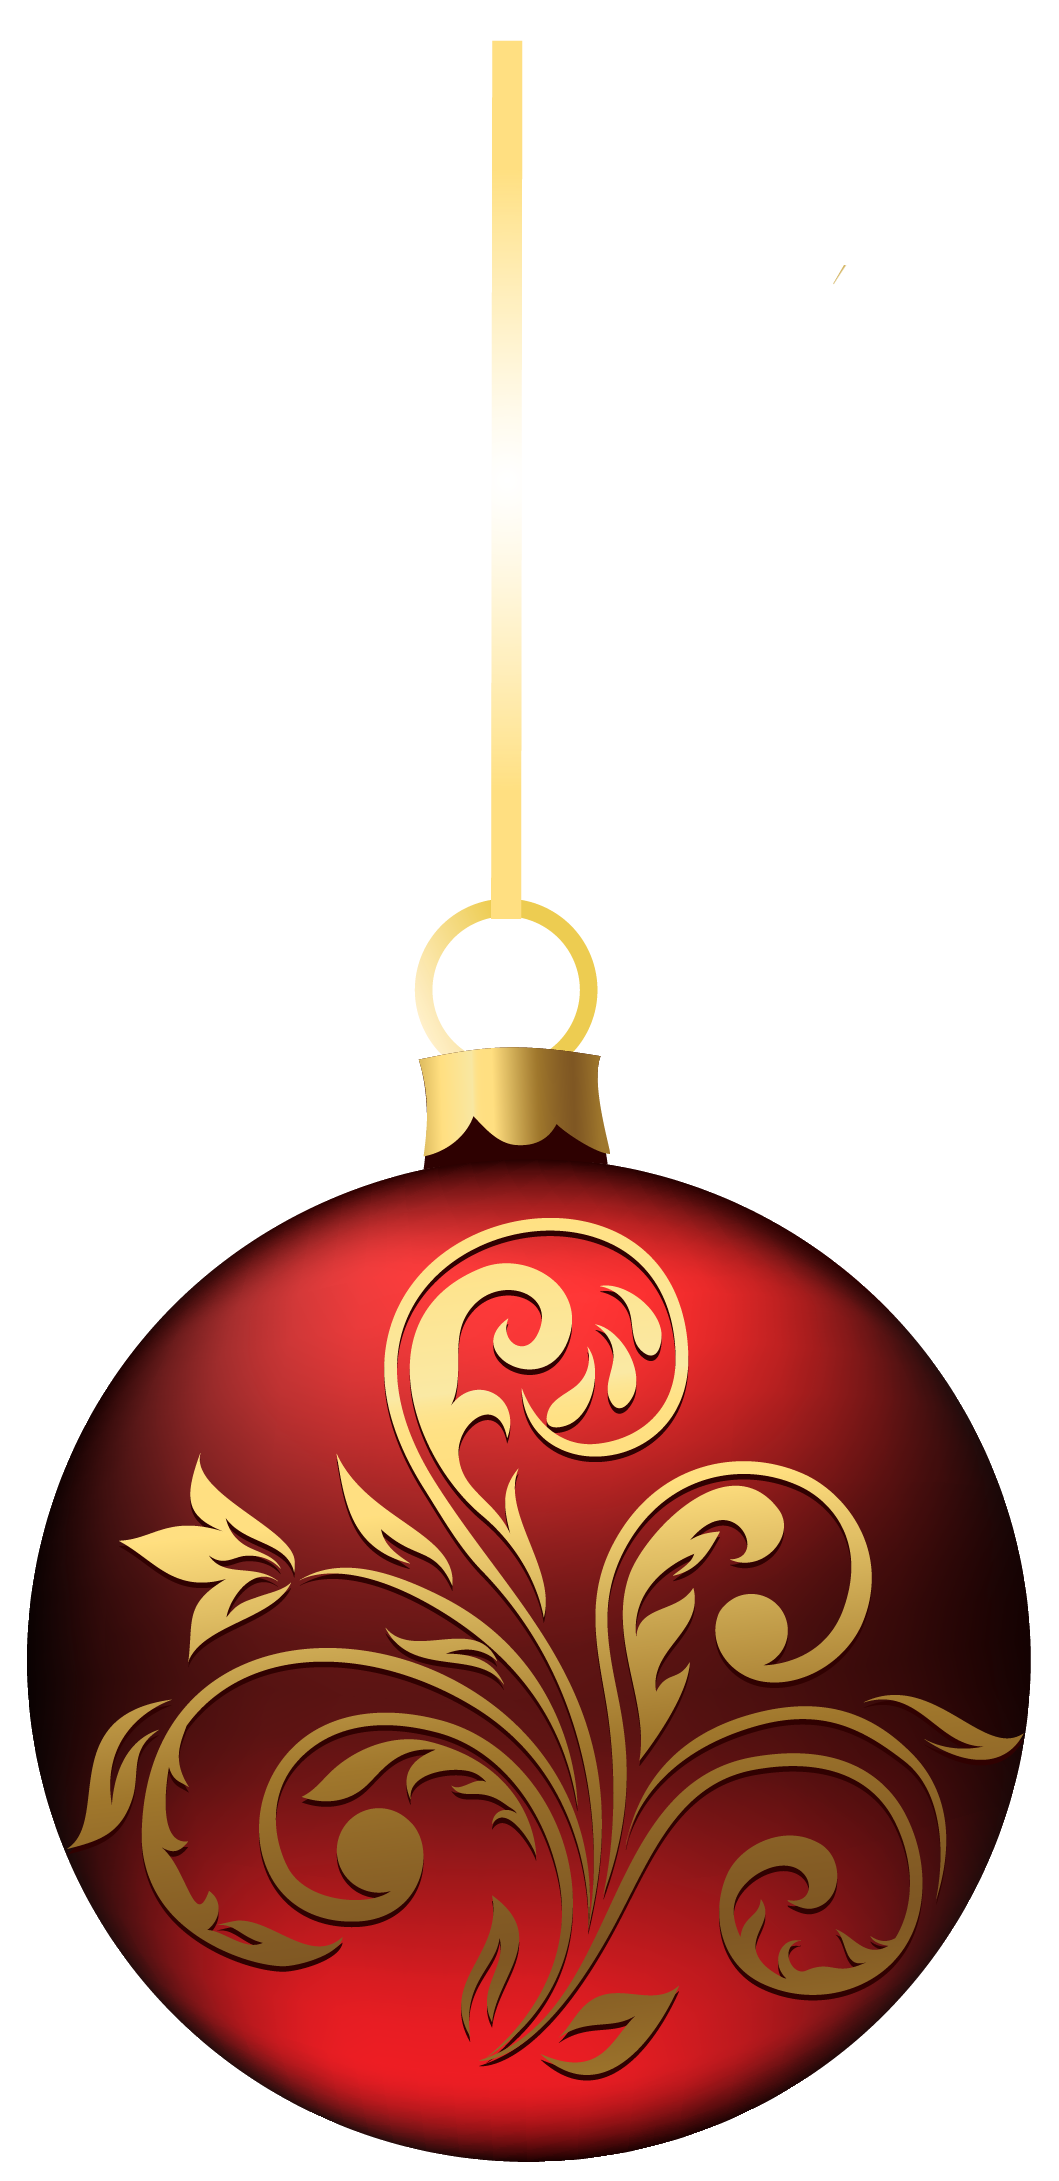 Christmas ornaments transparent png. Ornament free icons and